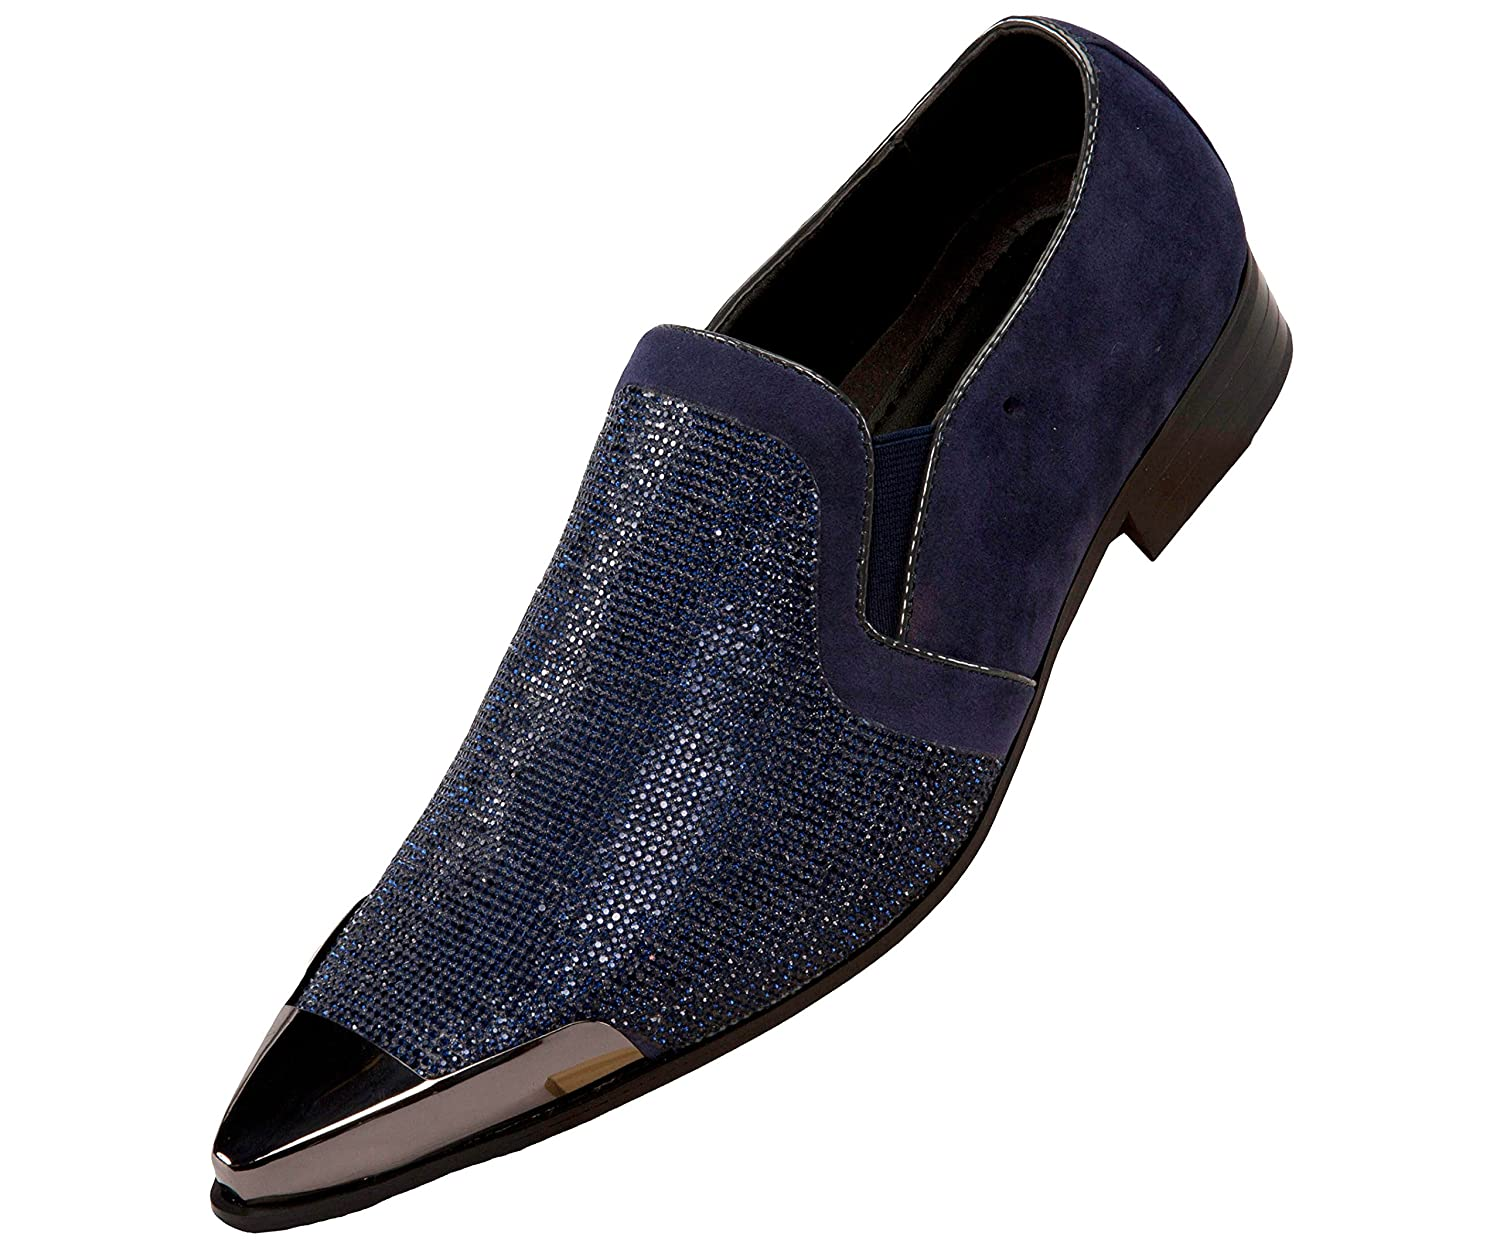 Bolano Mens Rhinestone Embellished and Faux Suede Trim with Metal Tip Dress Shoe, Comfortable Slip-On B07B1GGY44 8.5 D(M) US|Navy